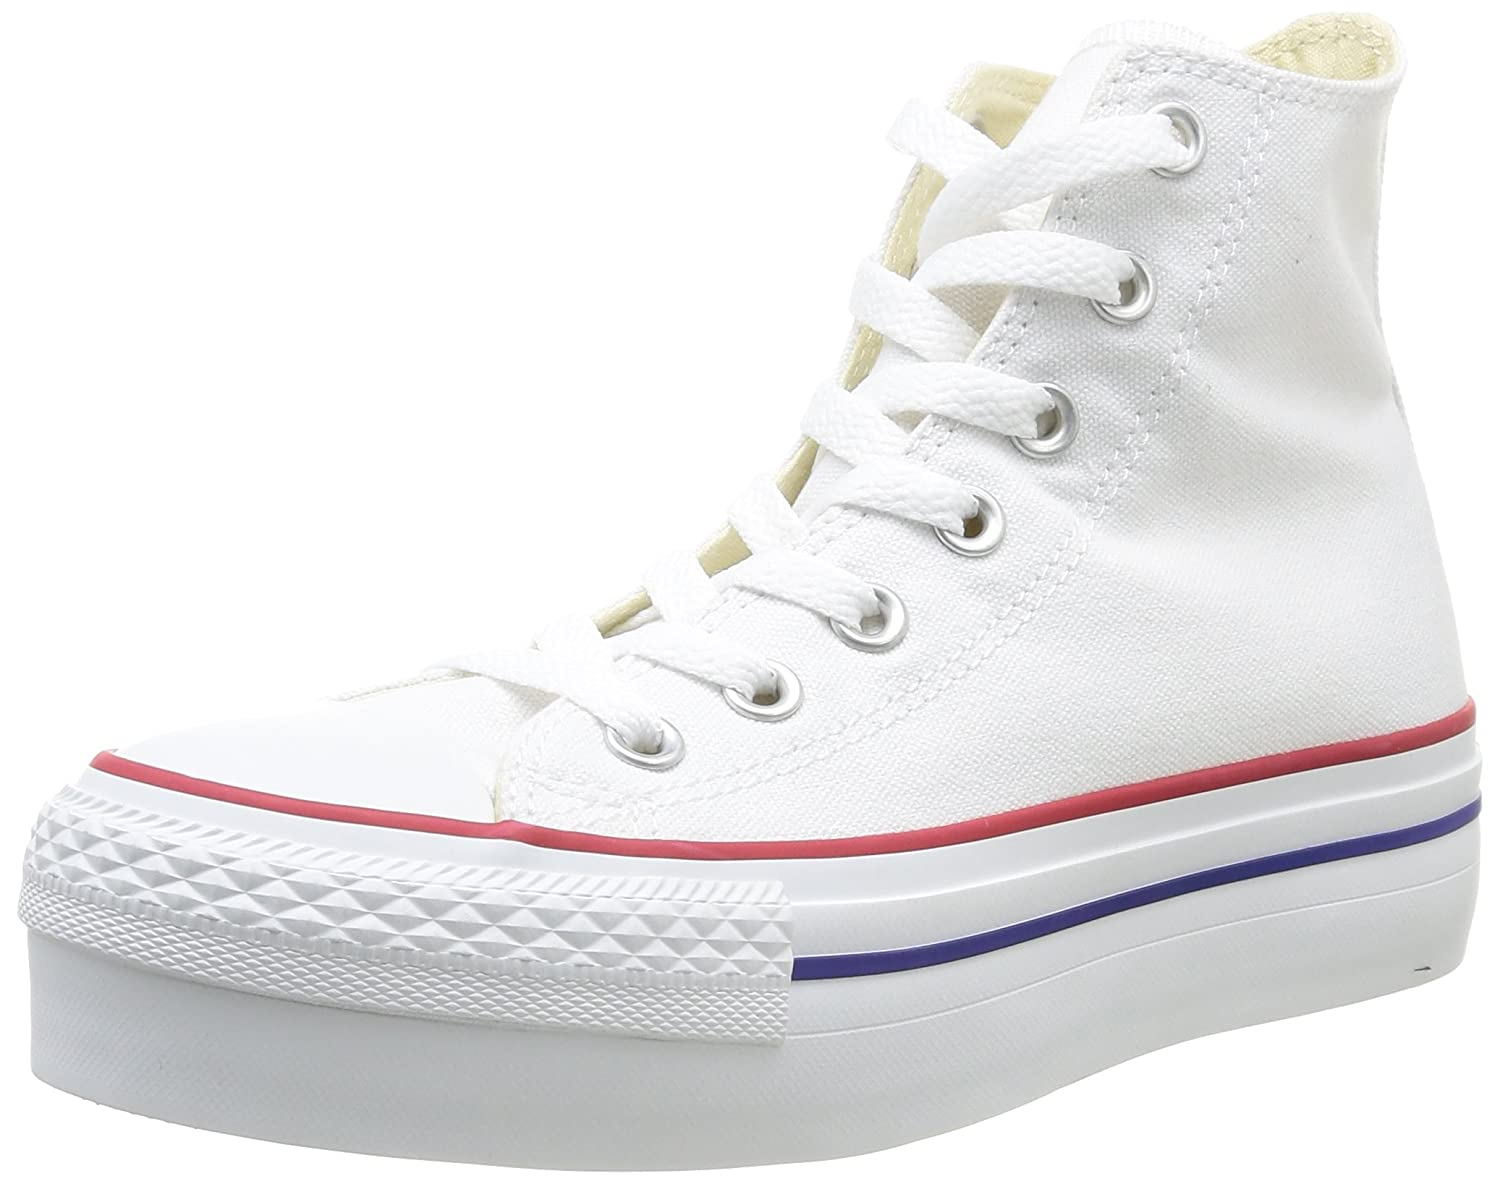 Converse Chuck Taylor All Star Hi Zapatillas